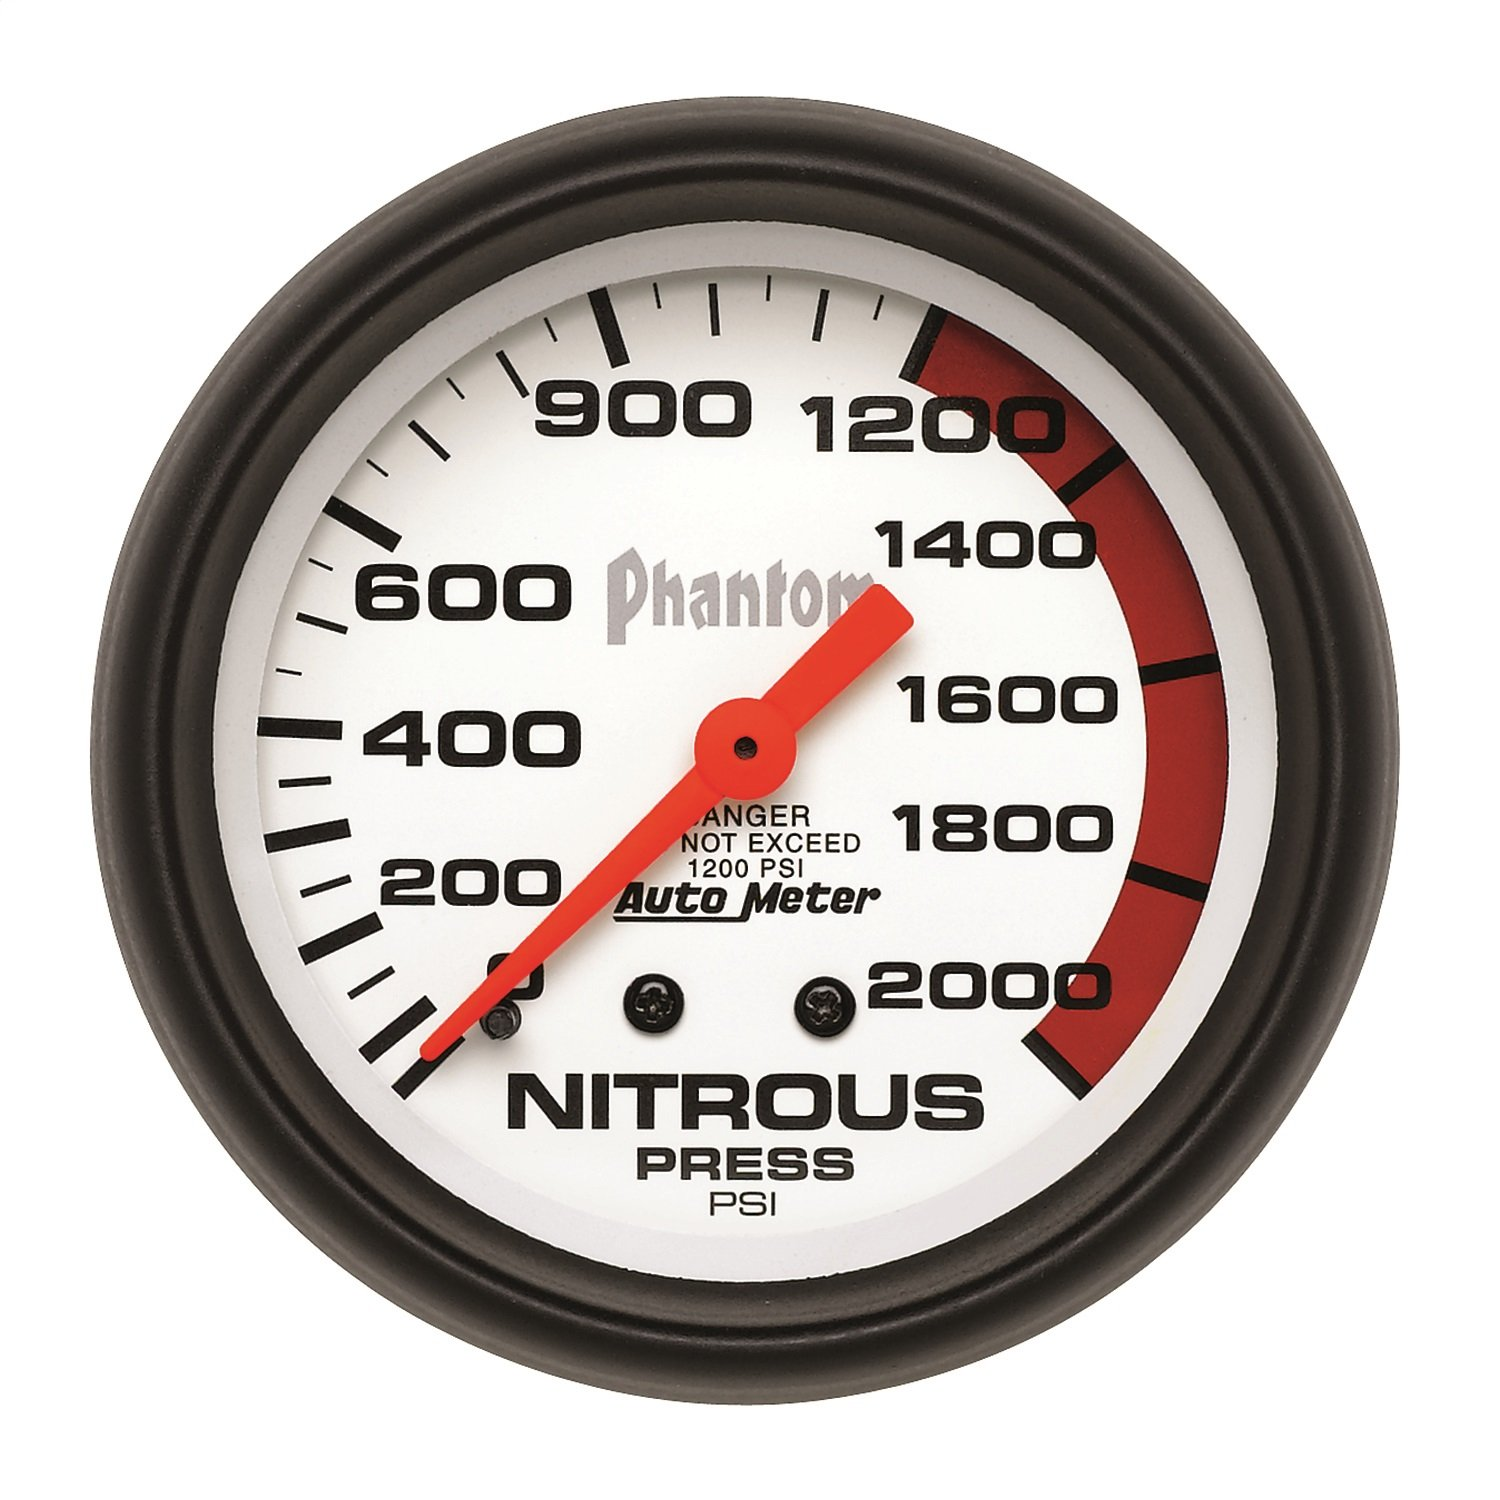 Auto Meter 5828 Phantom Mechanical Nitrous Pressure Gauge